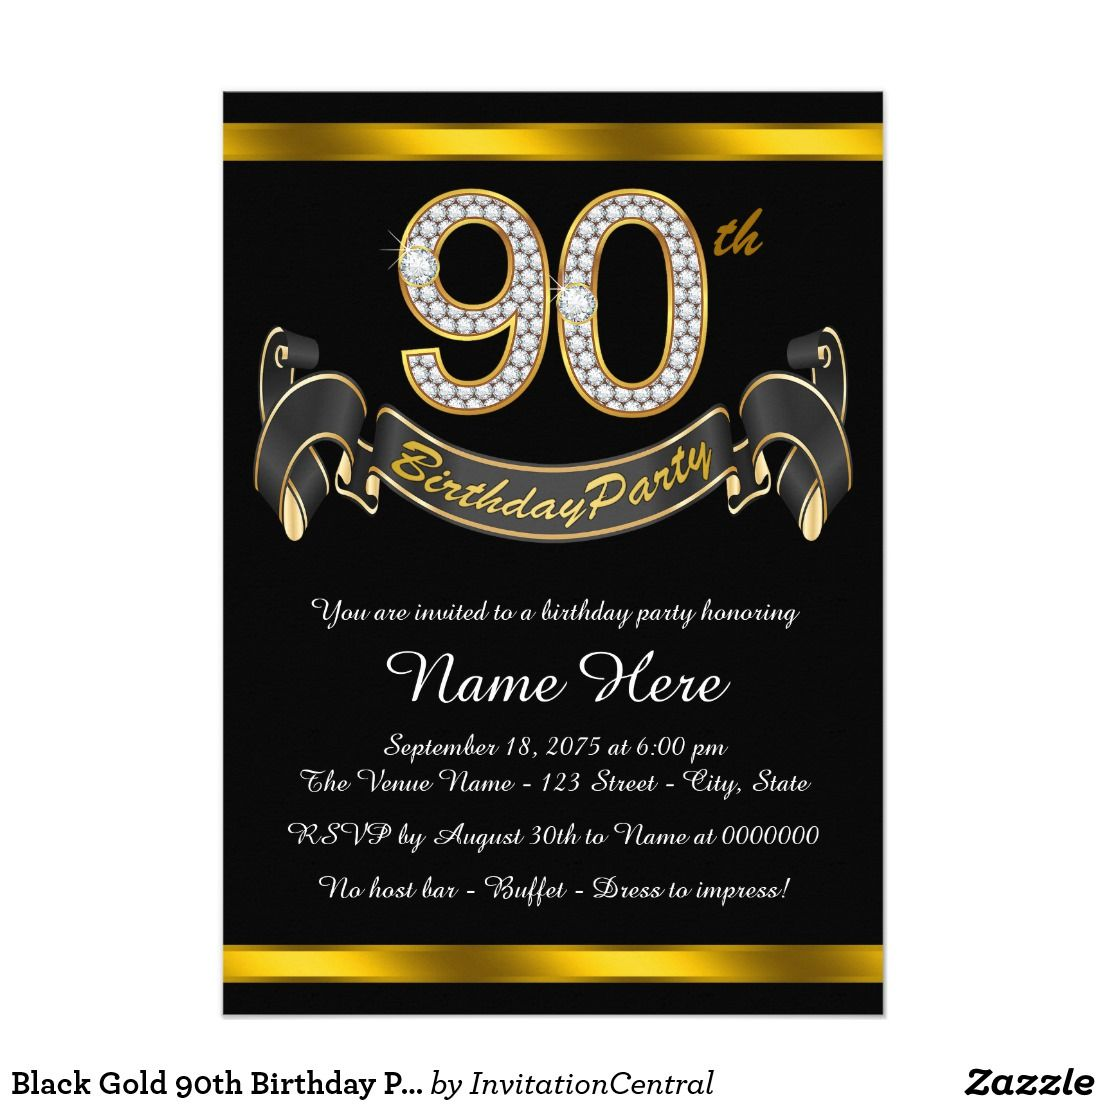 Black Gold 90th Birthday Party Card Invitation With Diamond Numbers And Banner On A Beautiful Background